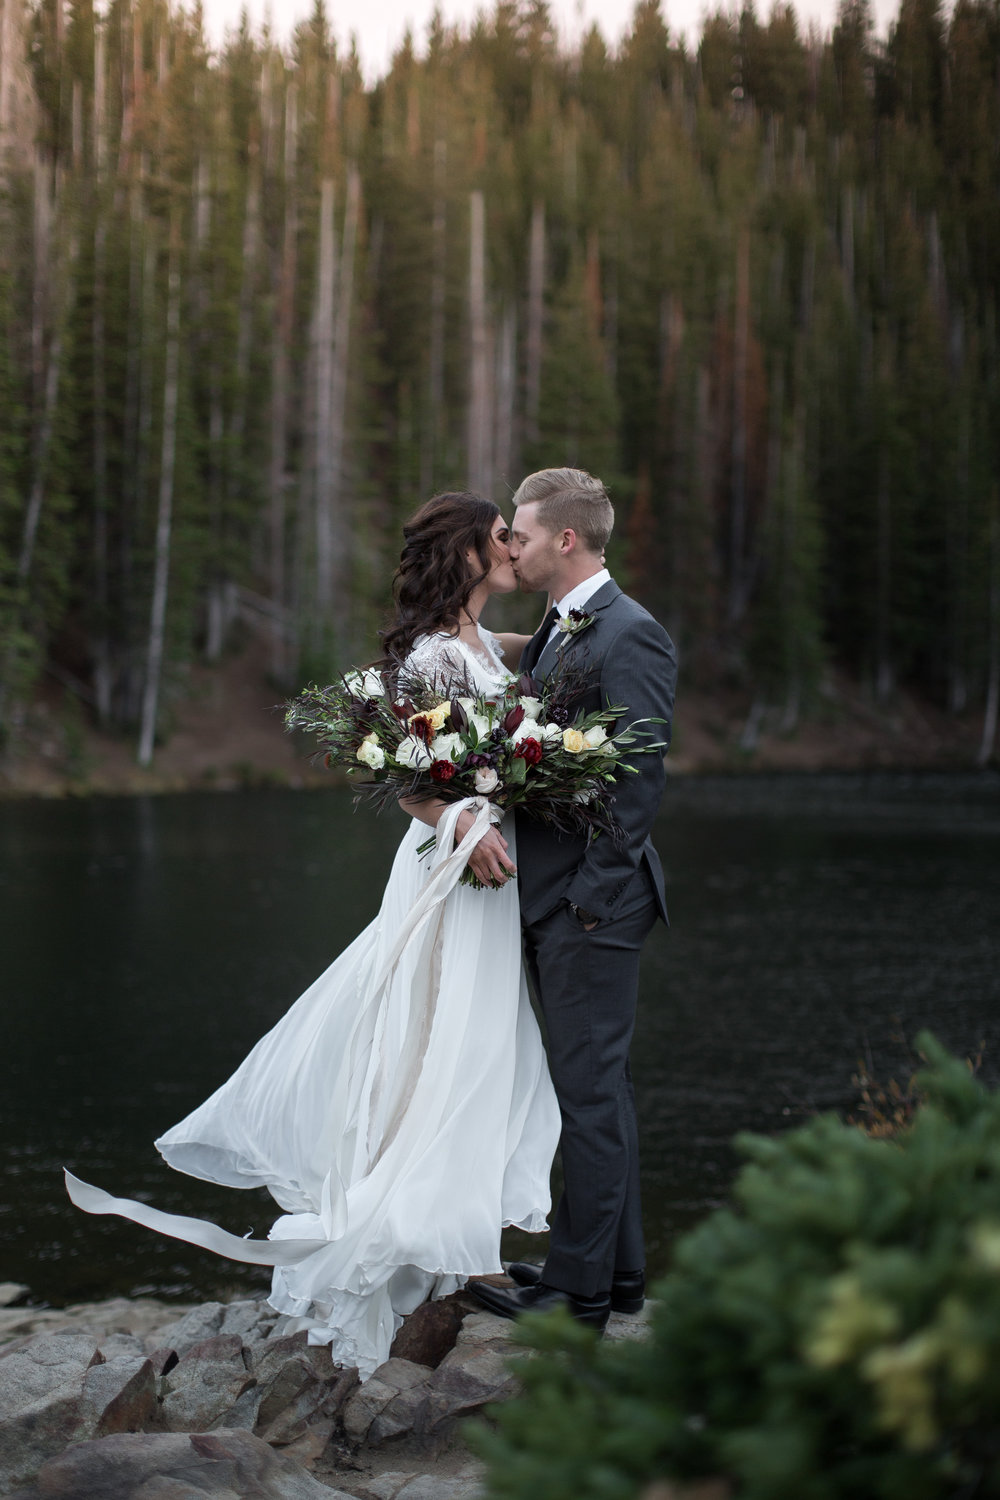 UtahValleyBrideShootTR2016 (20 of 110).jpg